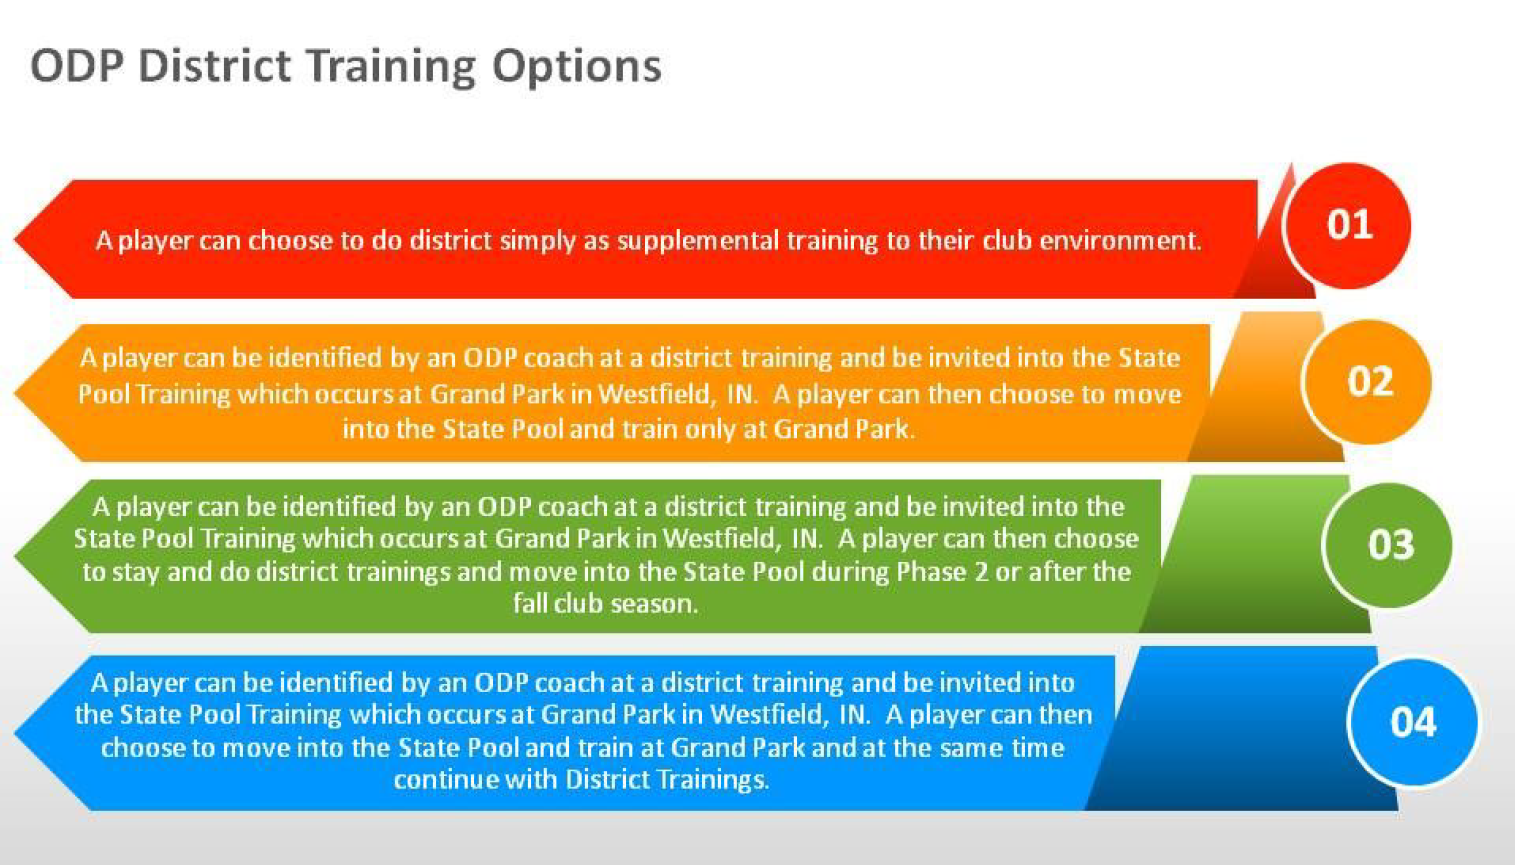 ODP_District_Training_Options